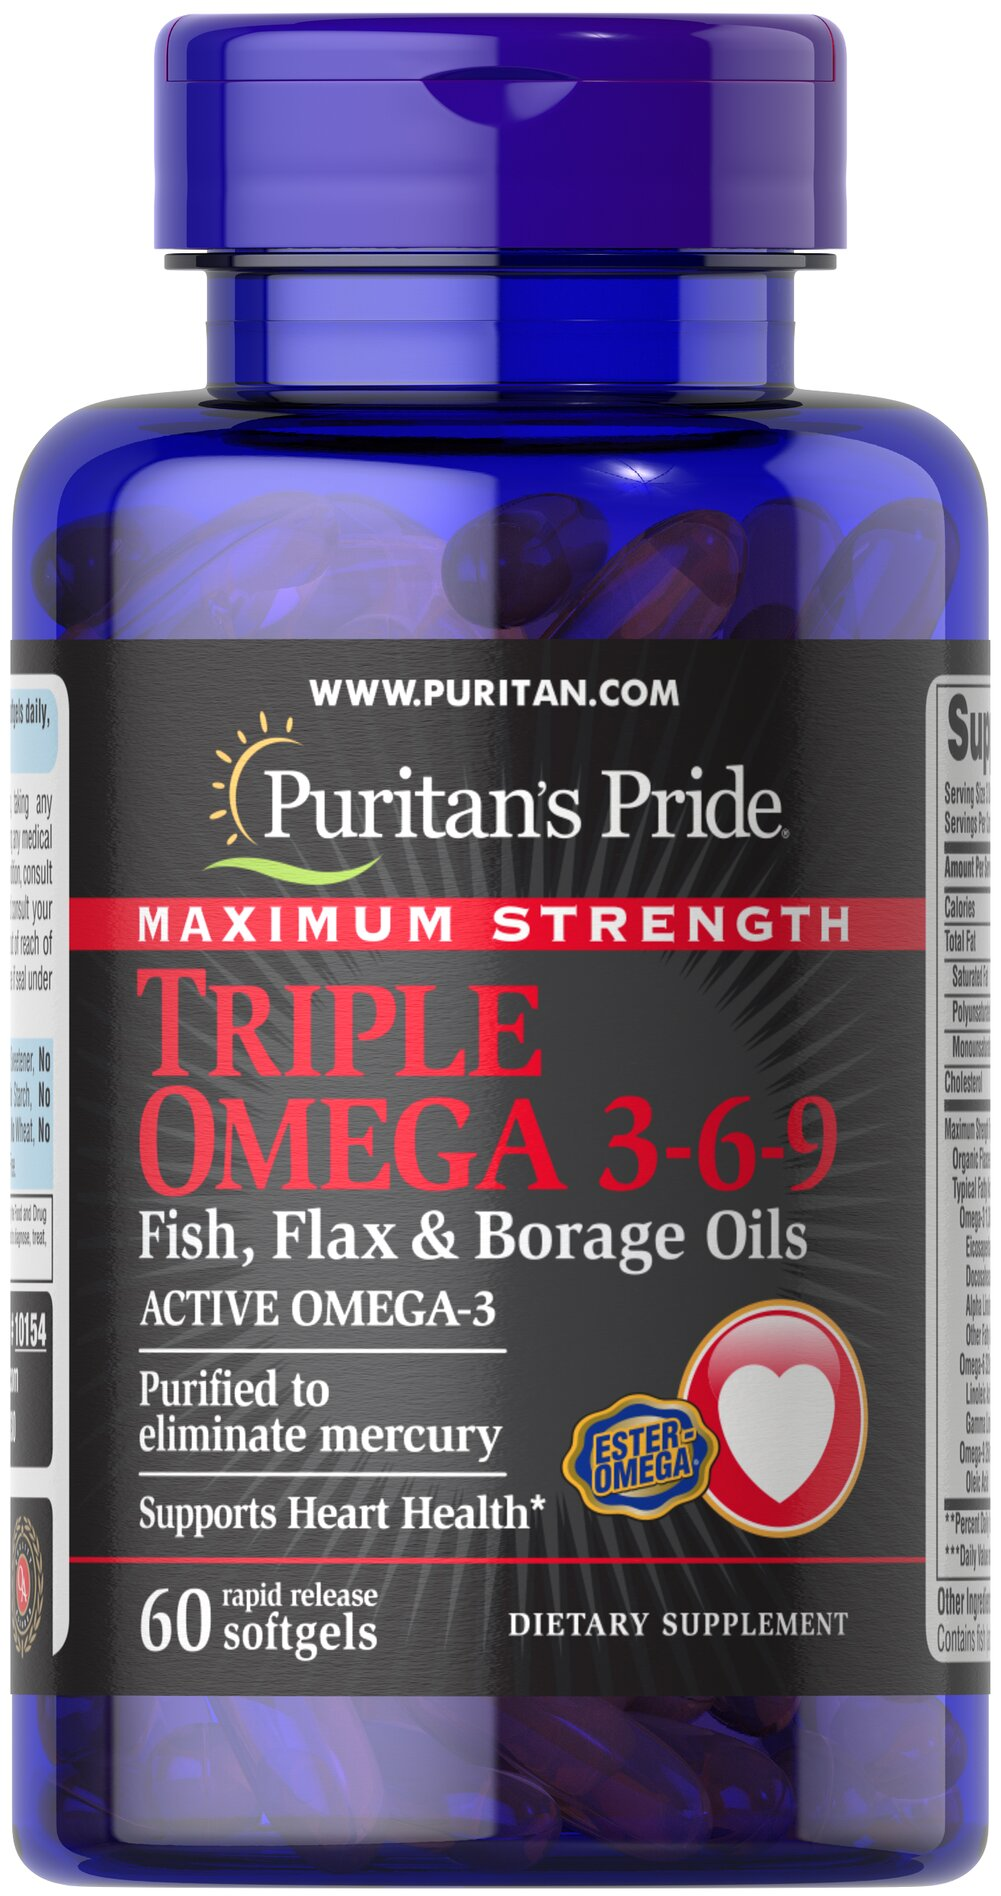 Maximum Strength Triple Omega 3-6-9 Fish, Flax & Borage Oils  60 Softgels  $10.49